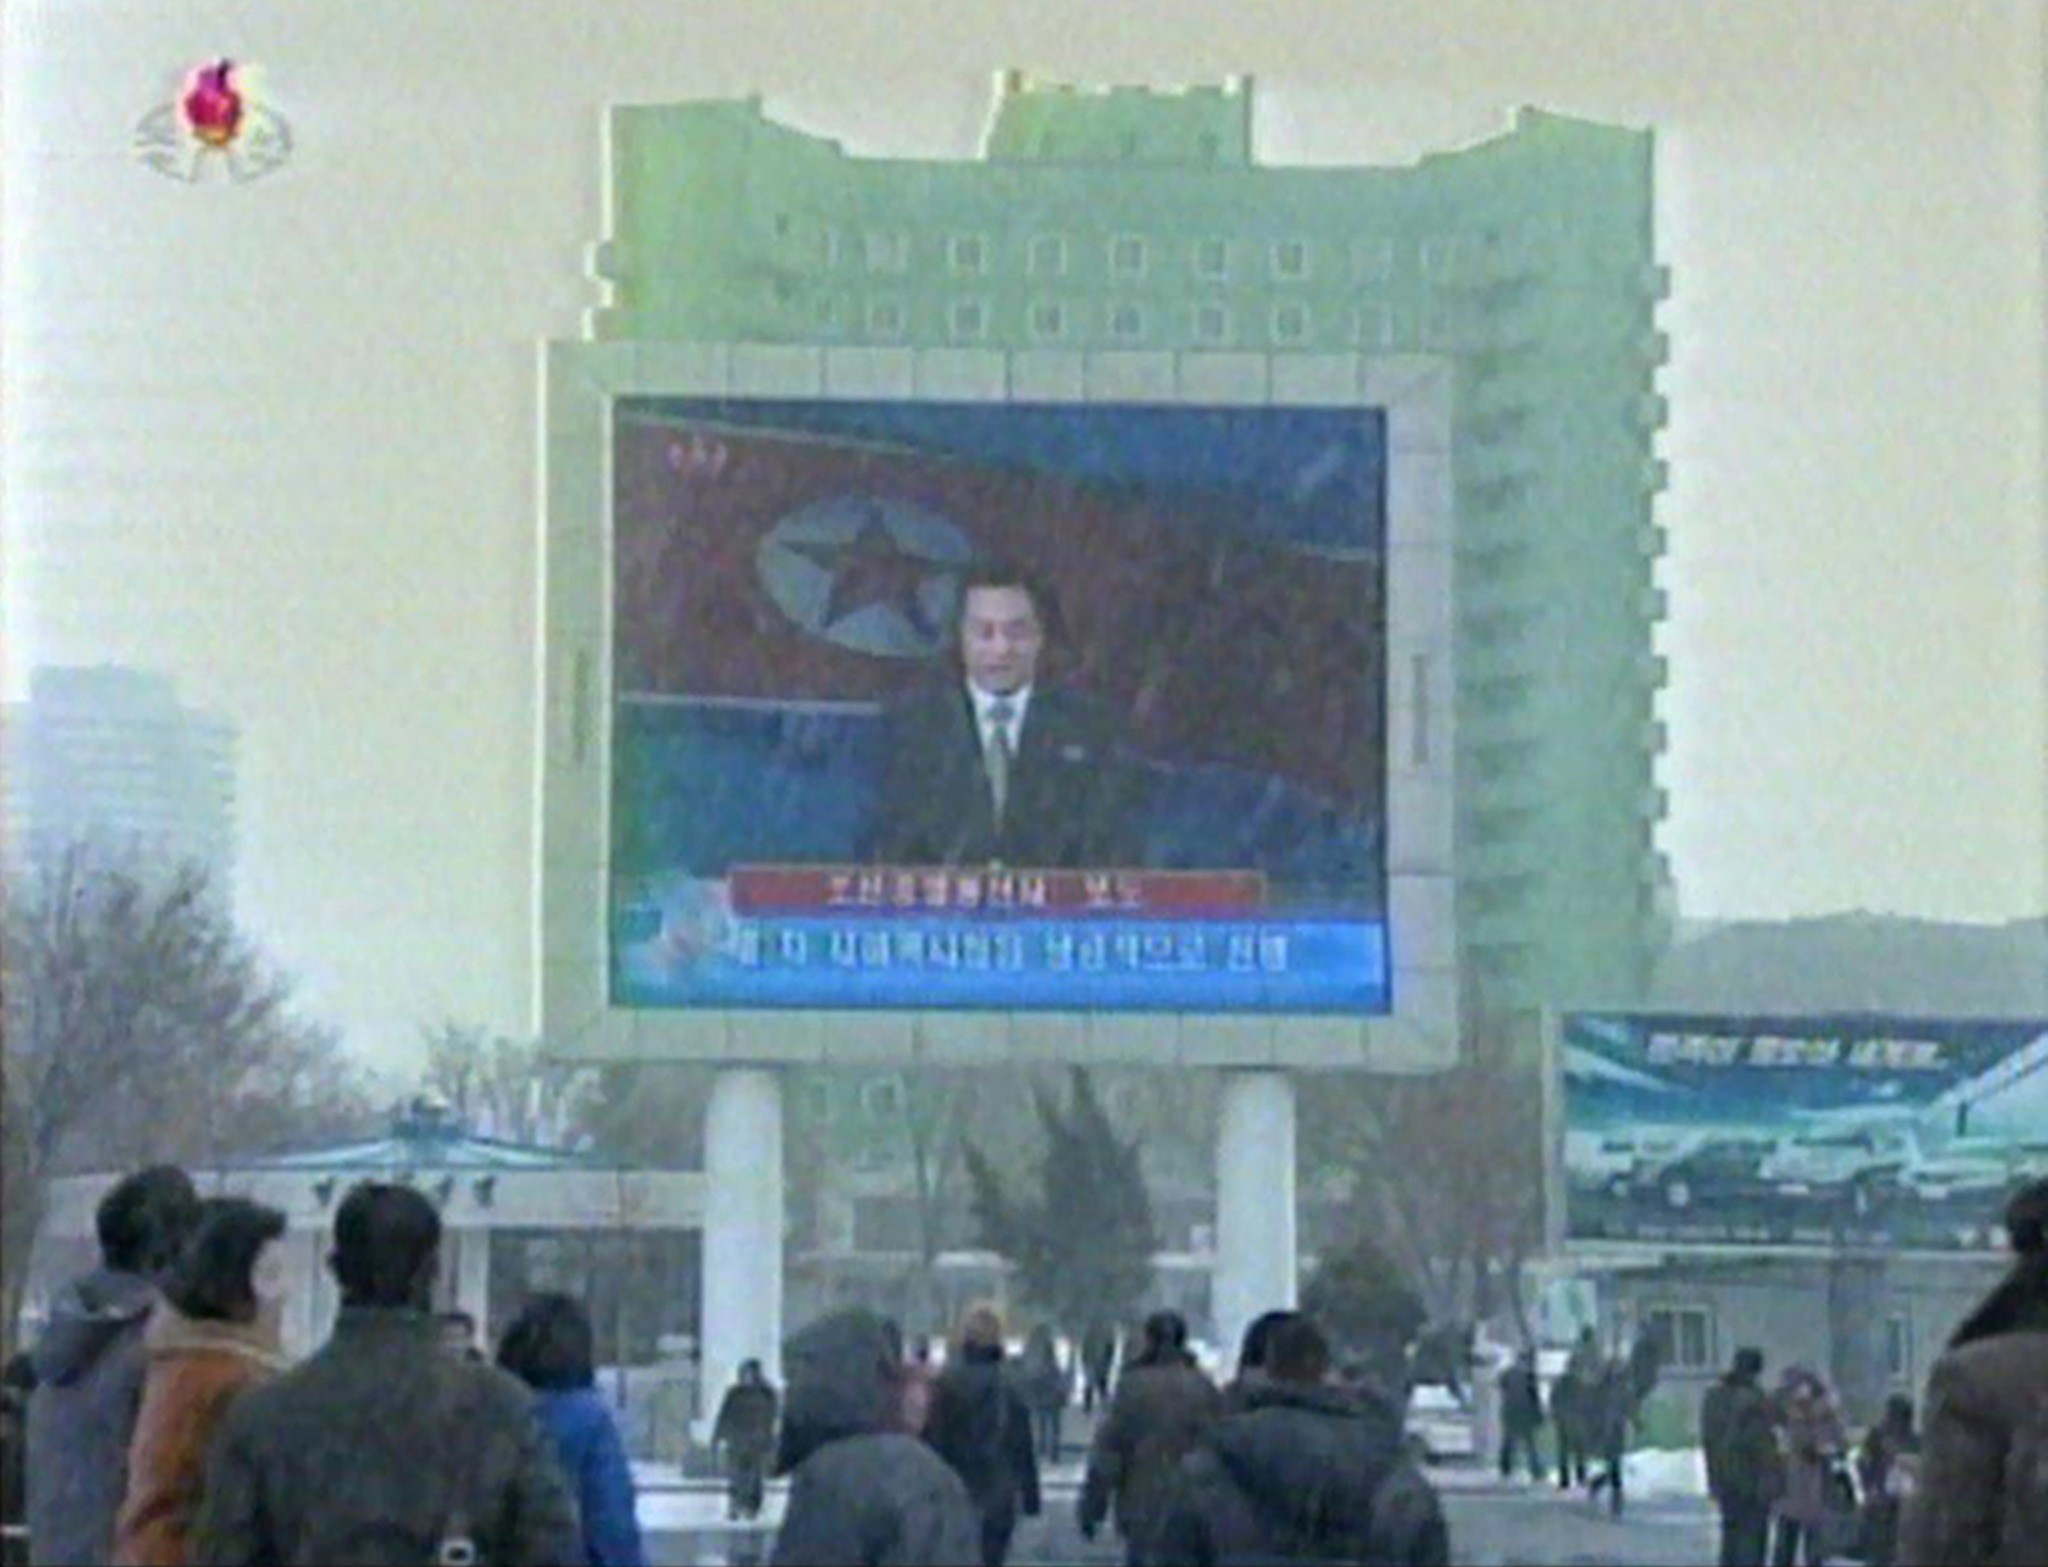 North Korea tests nuclear device - Pyongyang railway station